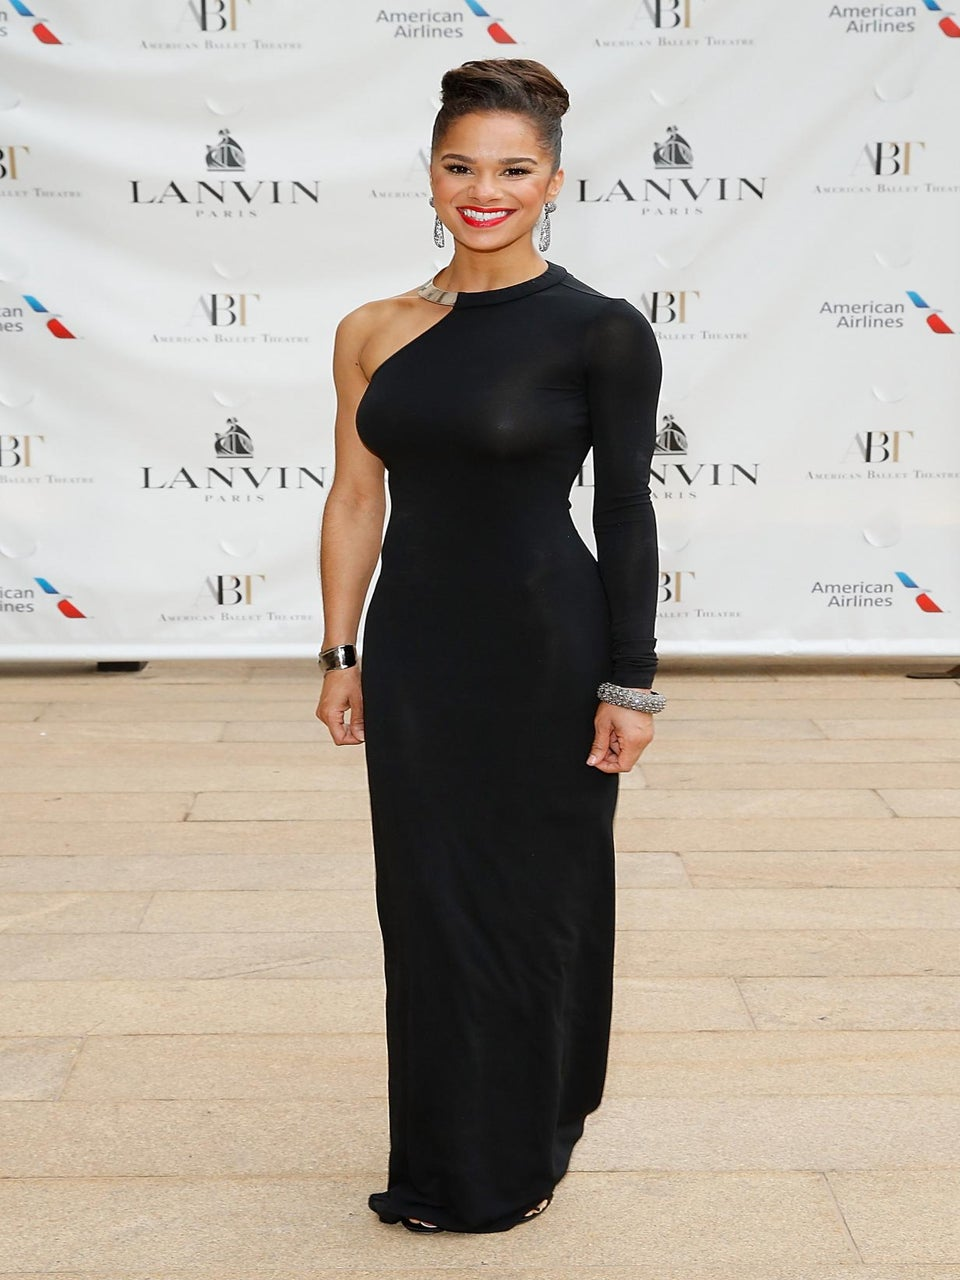 Misty Copeland, Tracy Morgan on 'Most Fascinating People' List